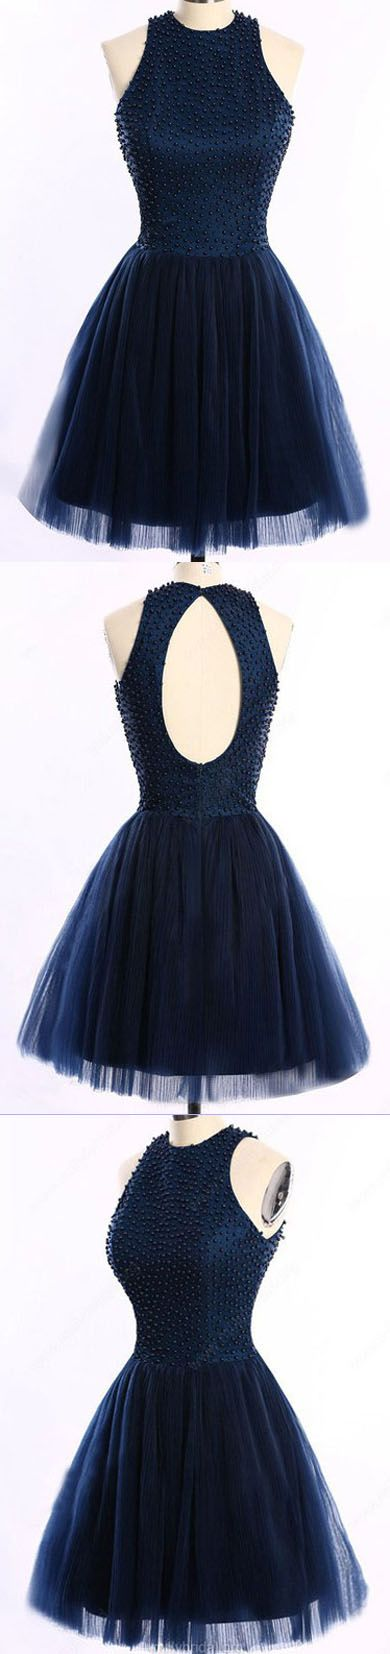 Homecoming Dresses,Prom Dresses Short,Cheap Homecoming Dress,Short Prom Dress,Sexy Homecoming Dress,Fashion Gowns Prom,Dresses for Teens,Prom Gowns,Graduation Dress,Scoop Neck Homecoming Dresses, Short/Mini Homecoming Dresses, Dark Navy Party Dresses,Sexy Short Prom Dresses, Open Back Homecoming Dresses, Cheap Summer Dresses for Girls